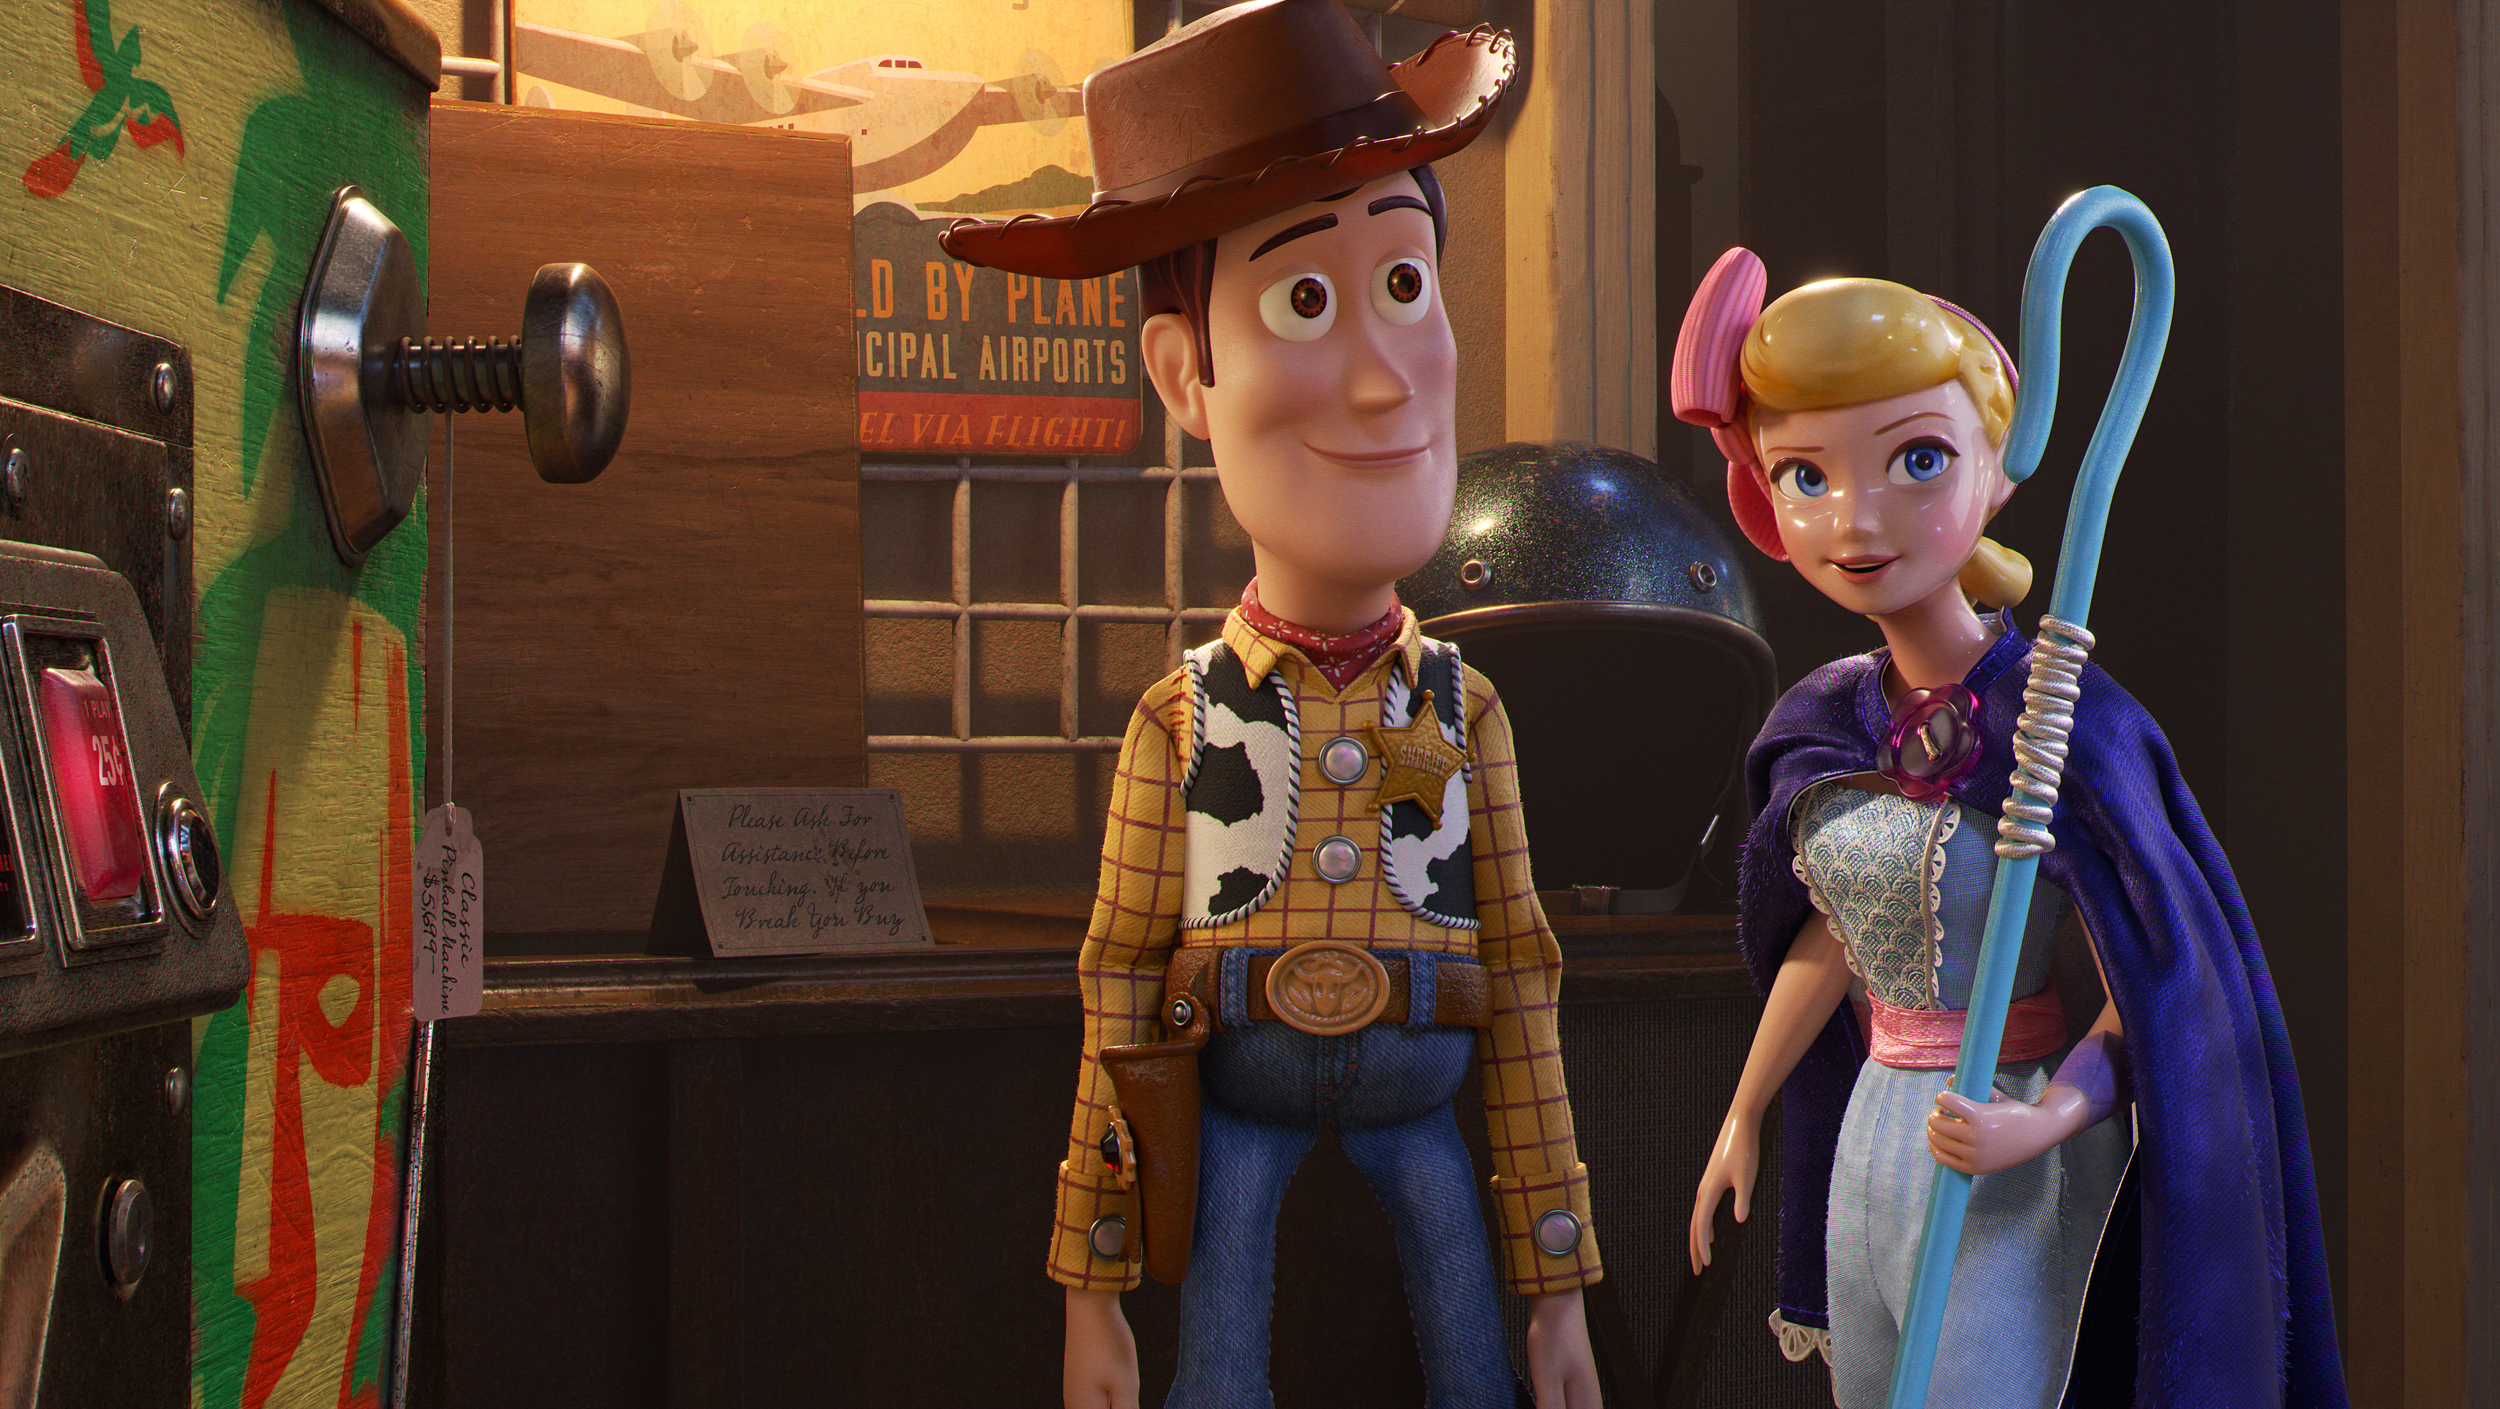 'Toy-Story-4'-feels-like-a-fitting-end-to-a-beloved-tale-—-but-so-did-'Toy-Story-3'